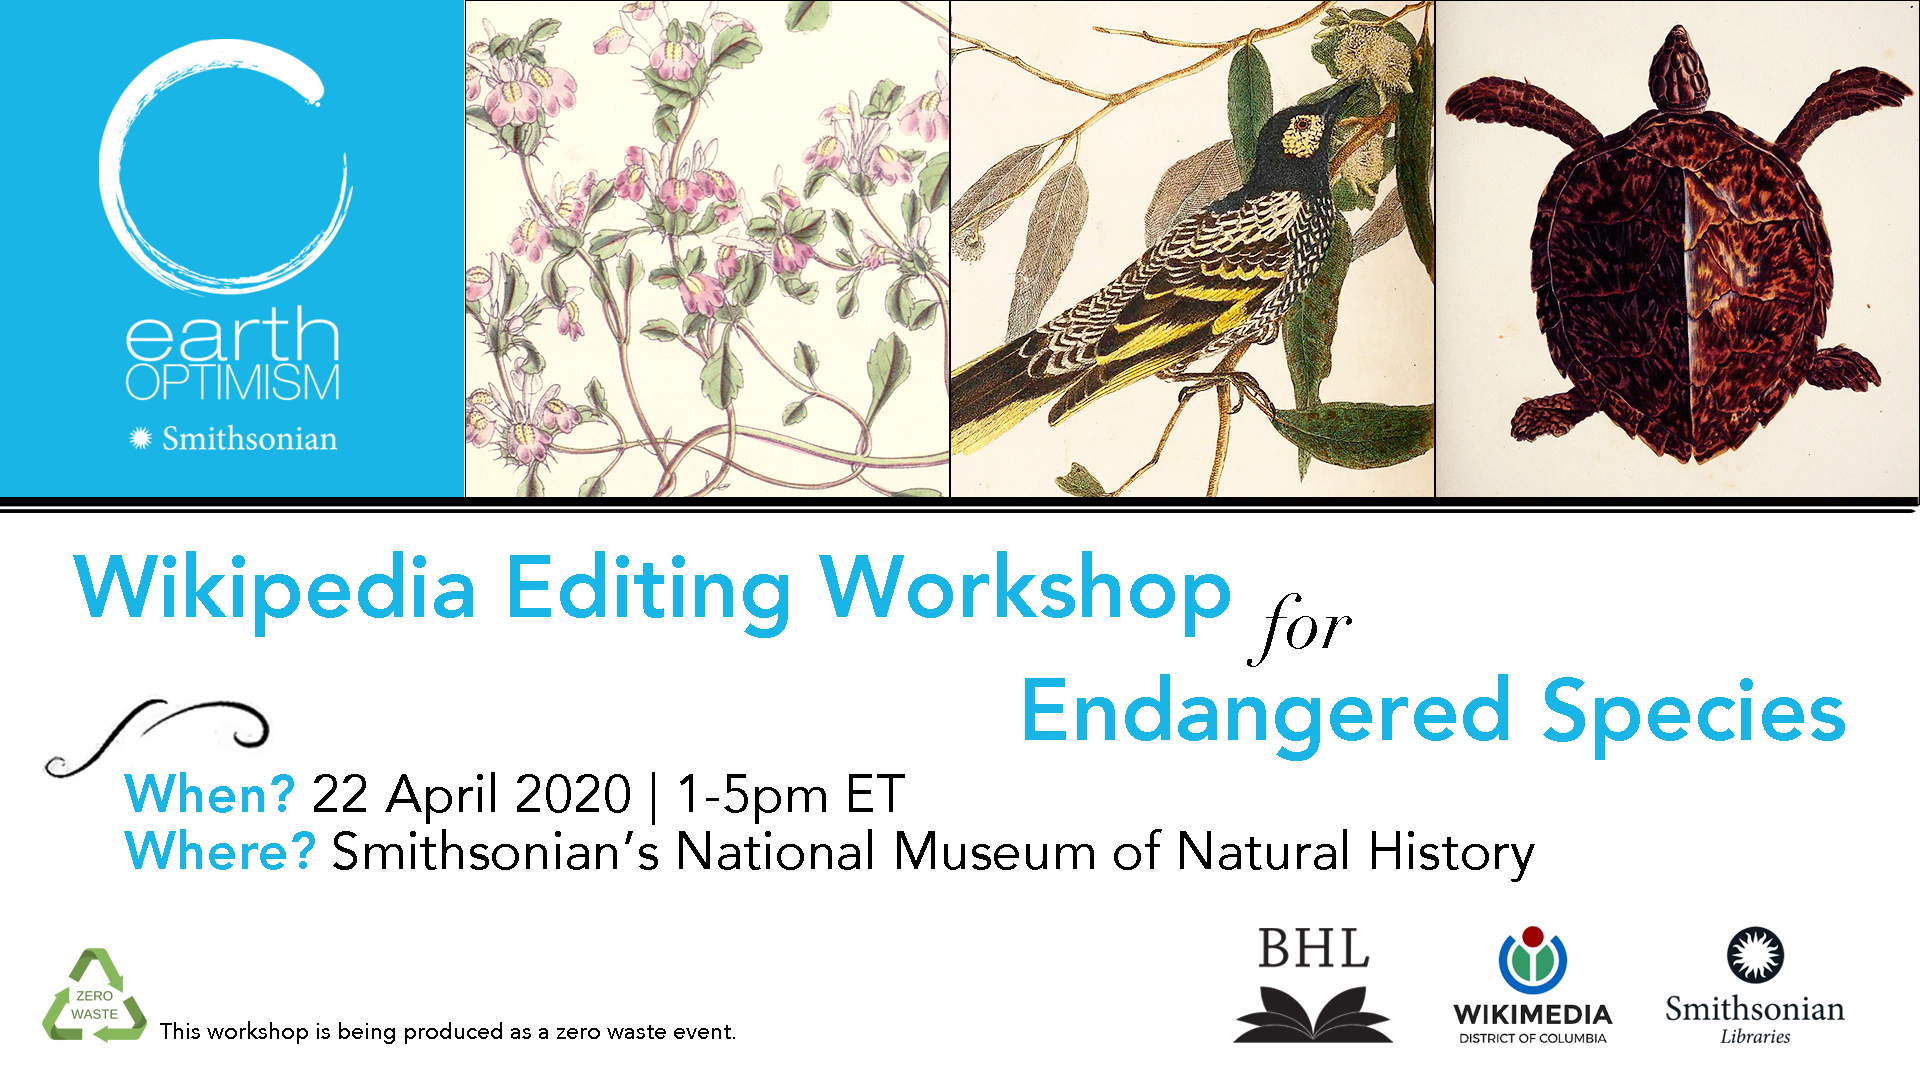 graphic for wikipedia workshop with illustrations of endangered species